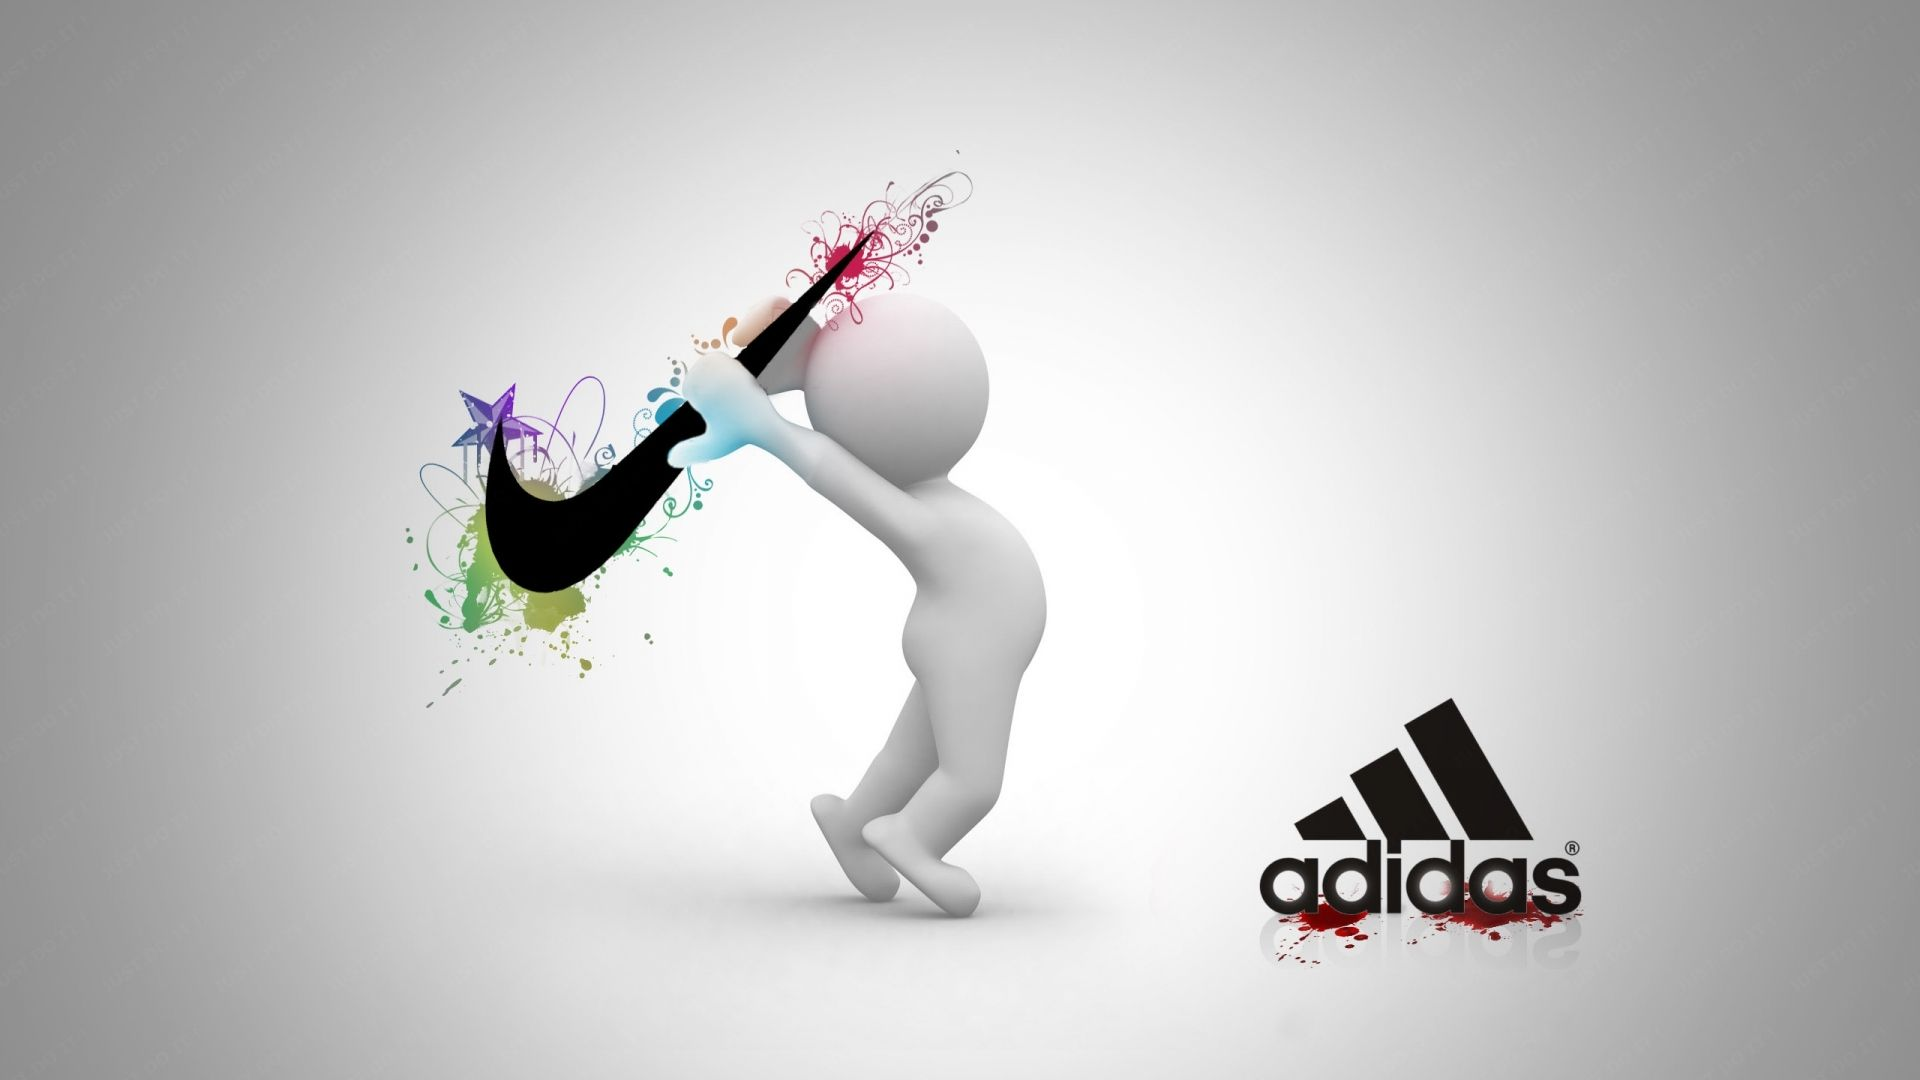 Hd wallpaper nike - Nike Hd Wallpapers Backgrounds Wallpaper 1600 900 Nike Wallpaper Hd 44 Wallpapers